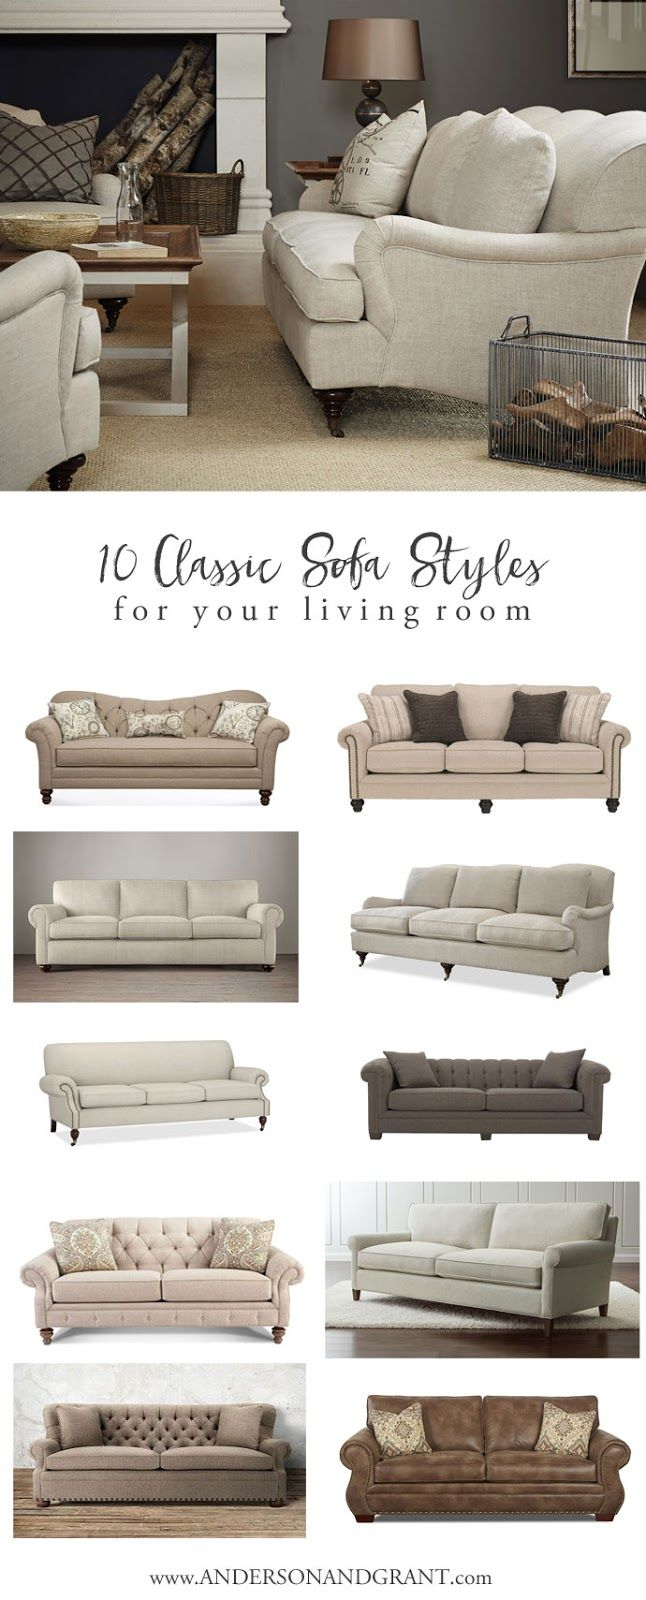 Classic Sofa Style Names 10 Classic Sofa Styles For Your Living Room Furniture Sofa